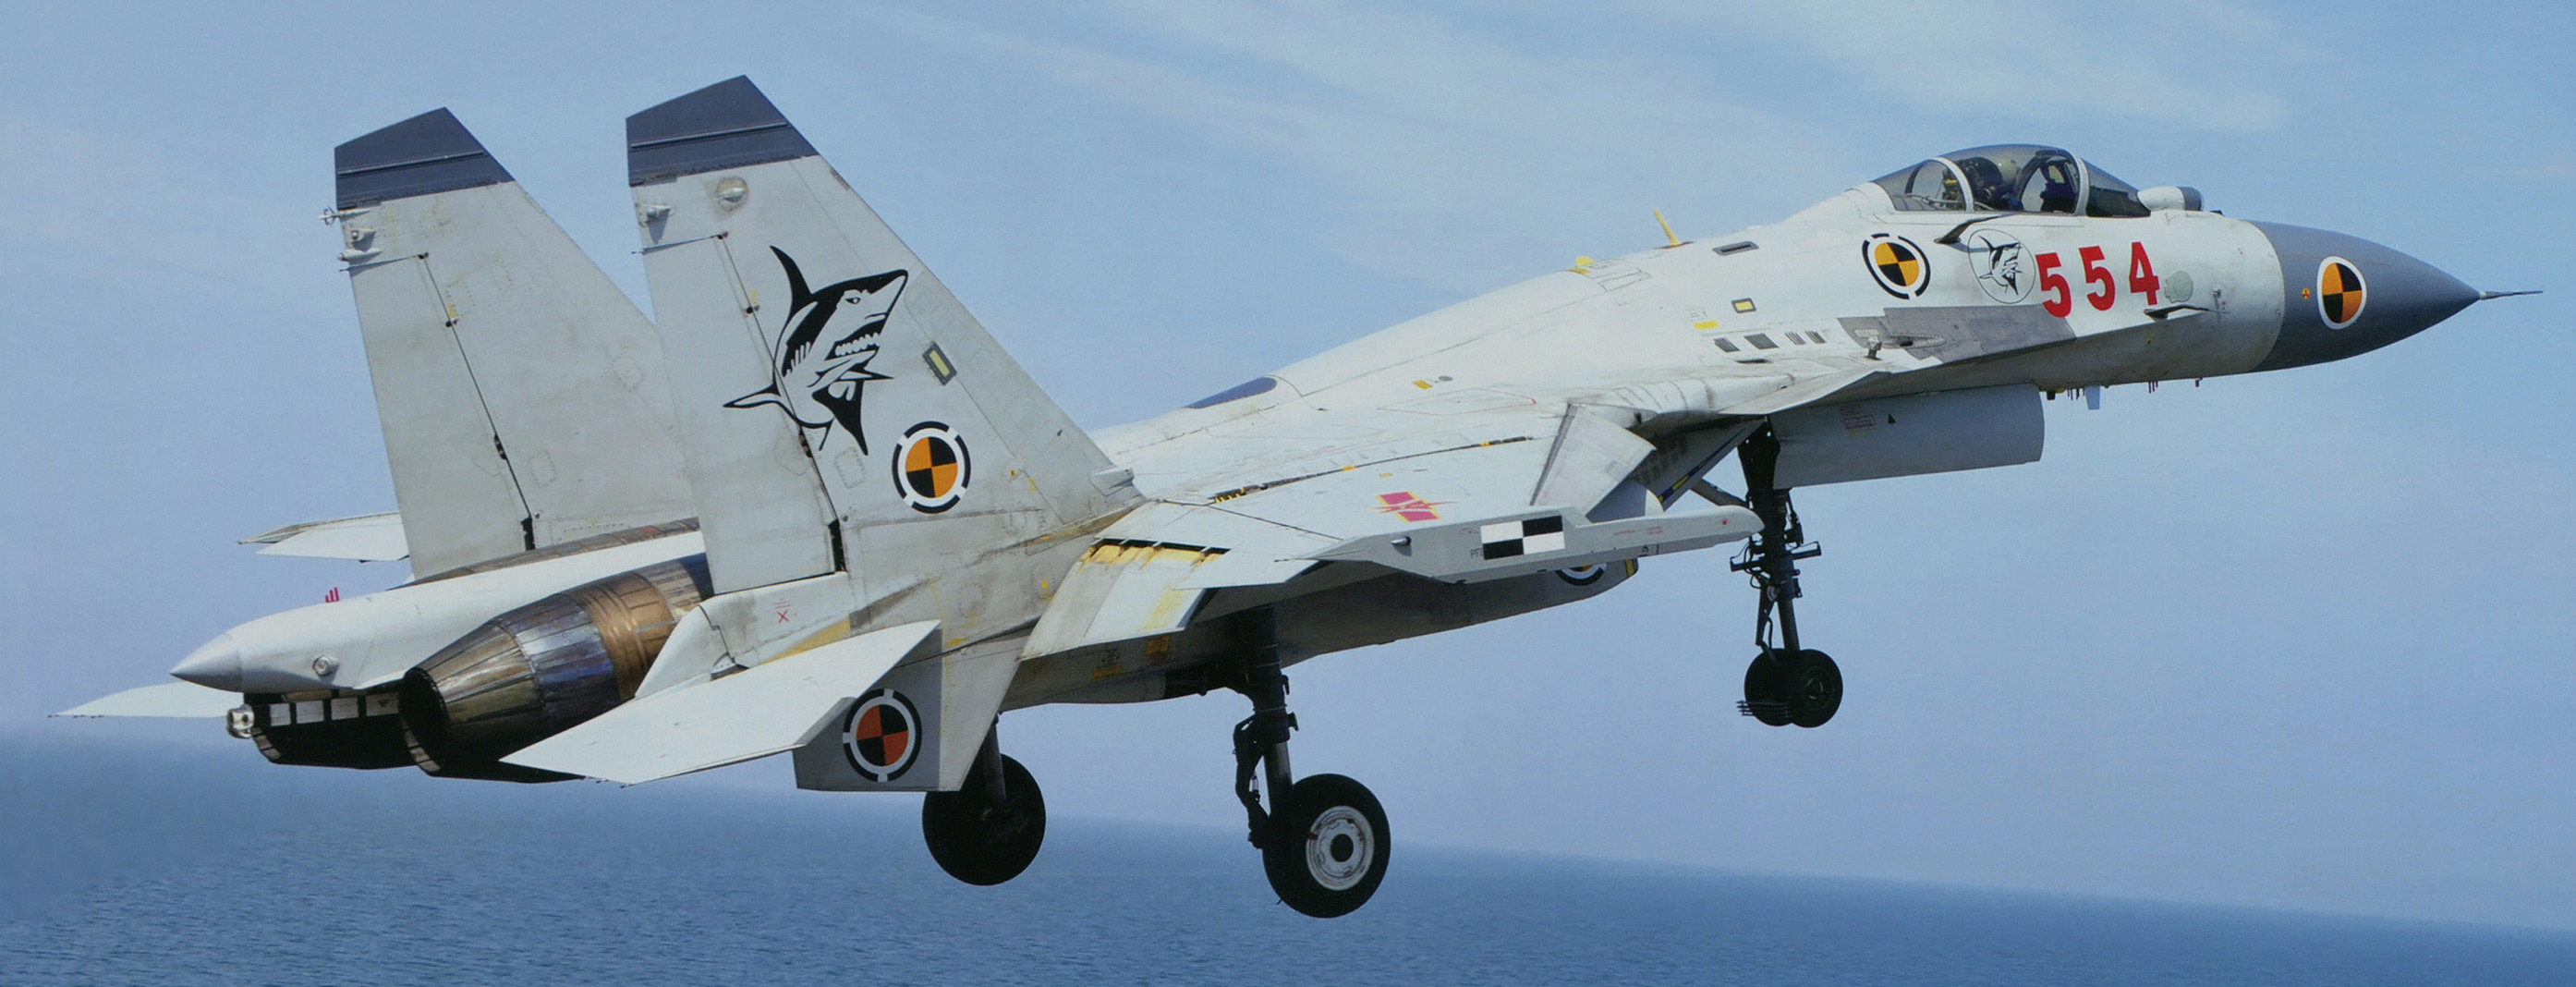 A J-15 aircraft during takeoff. This aircraft has a more combat-ready grey livery but still sports the calibration markings seen on the yellow J-15.